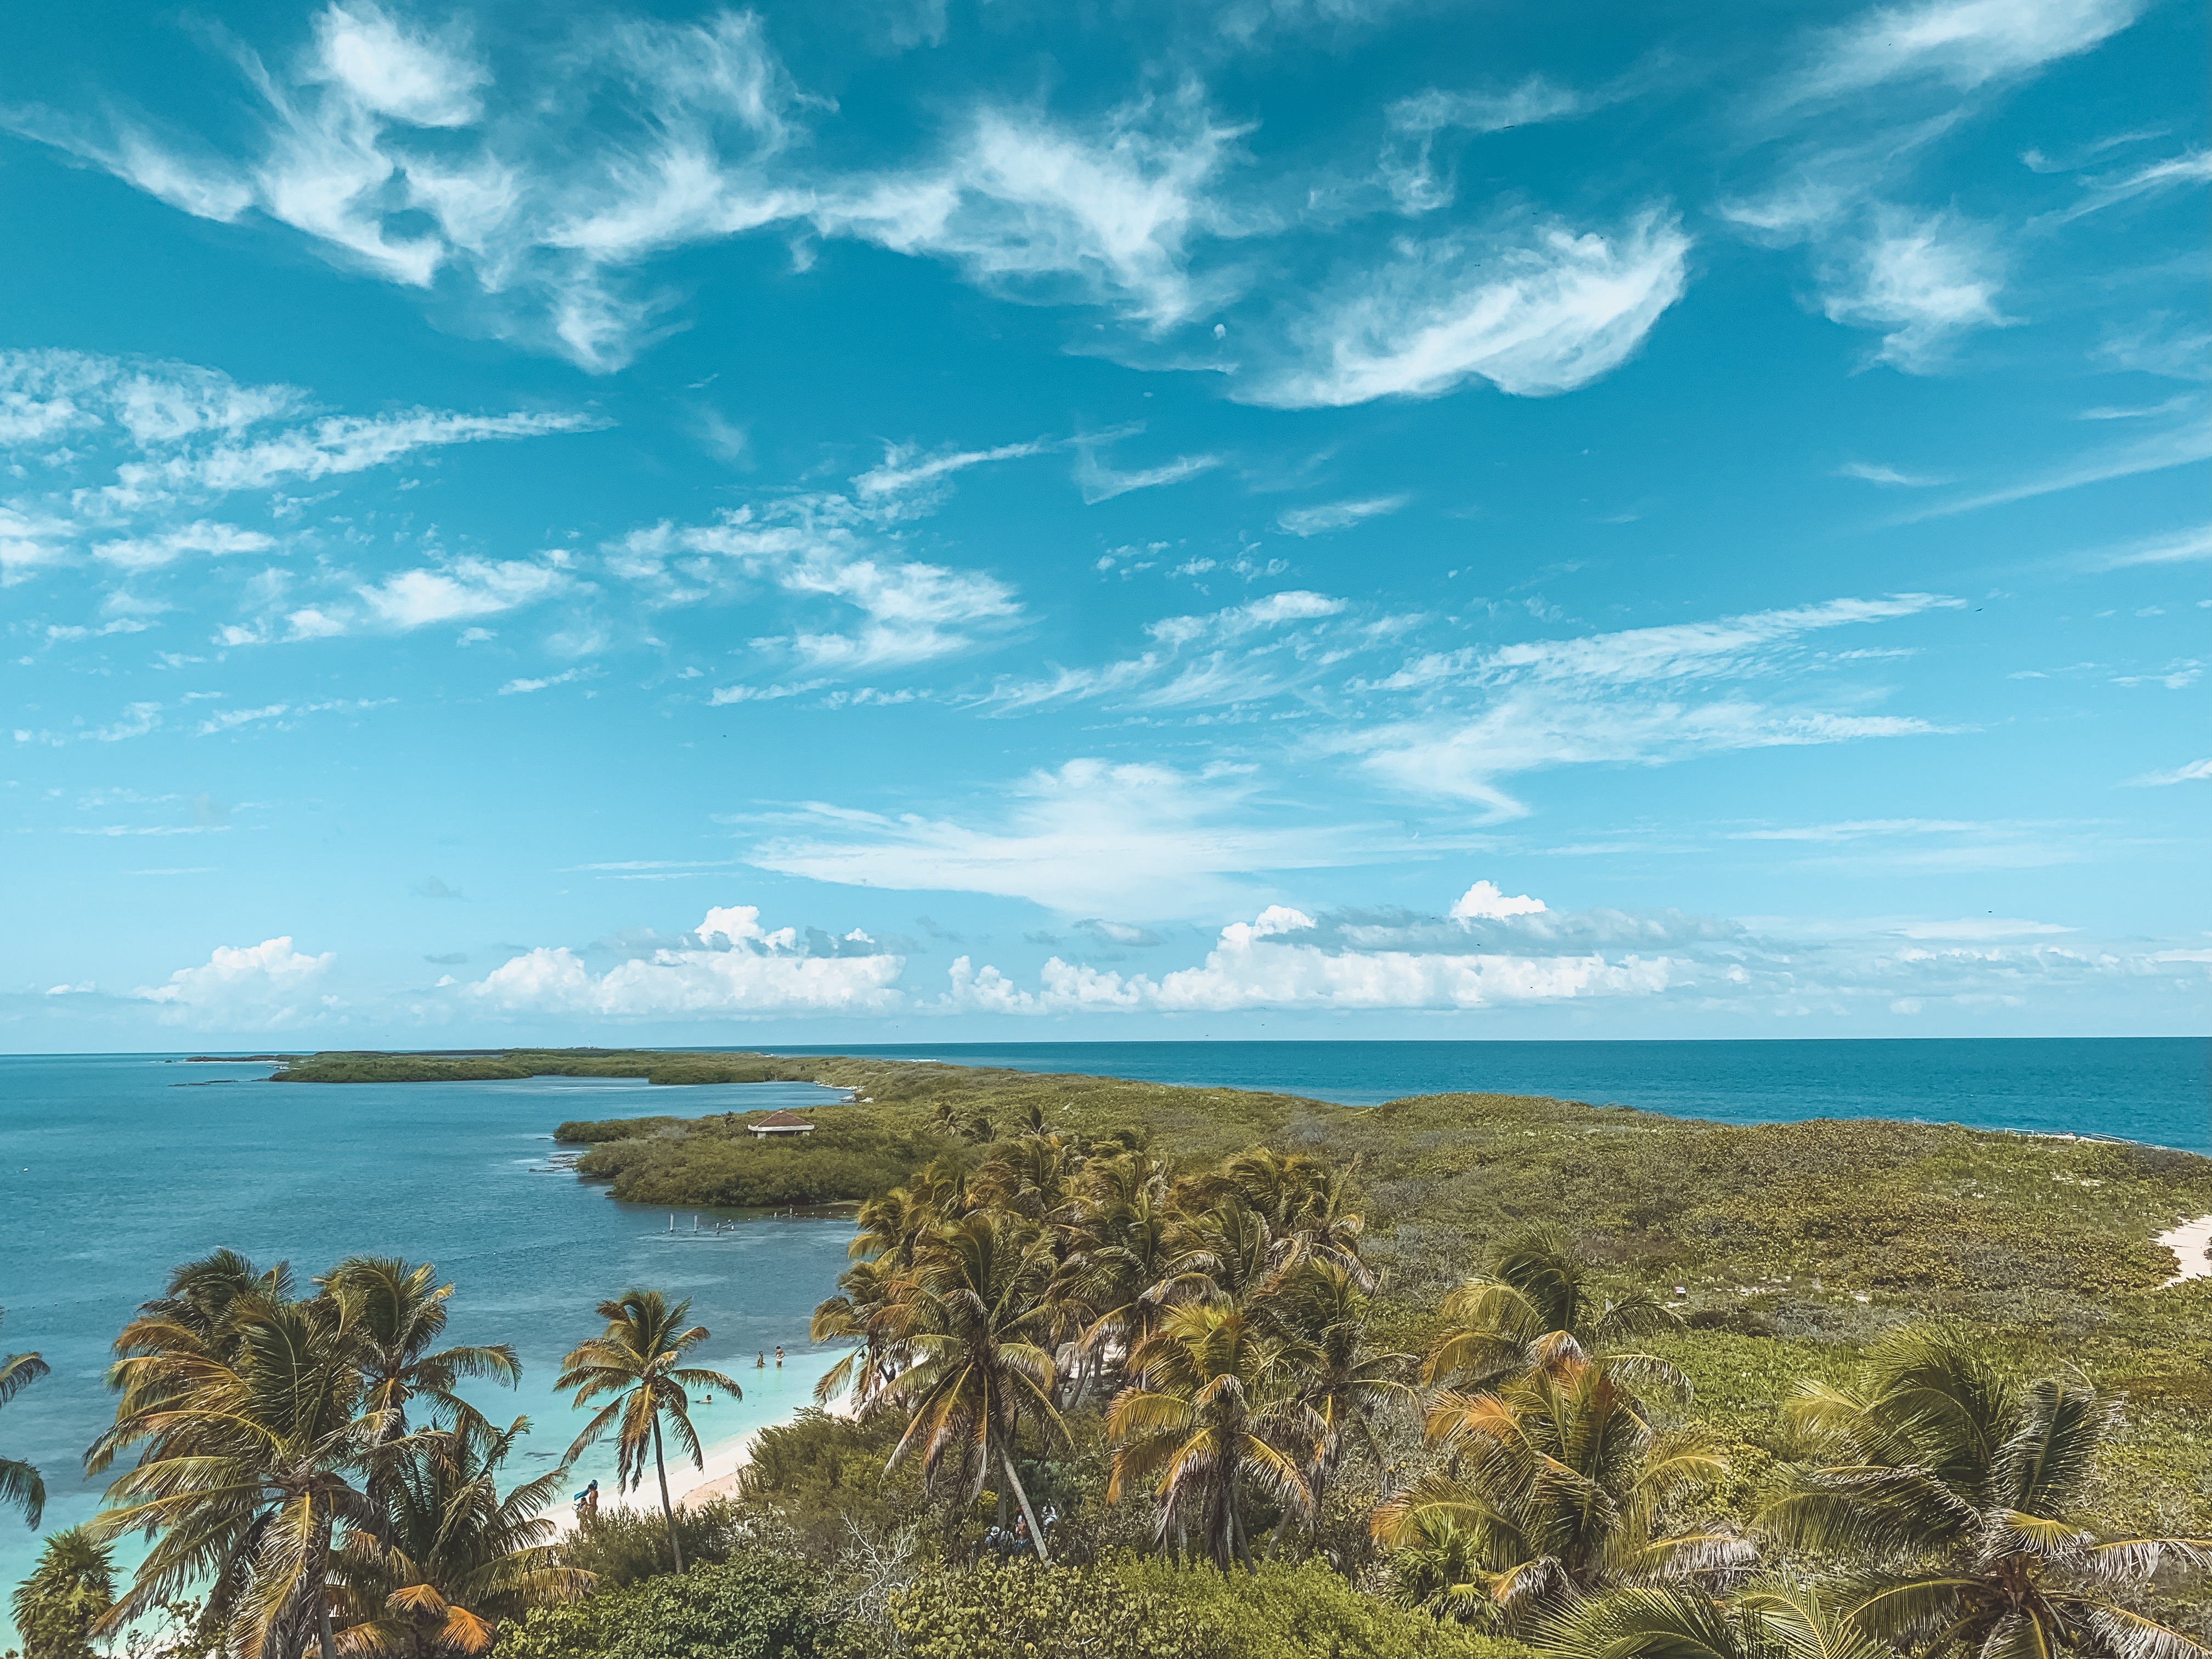 Quintana Roo, Mexico pushes for sustainable tourism